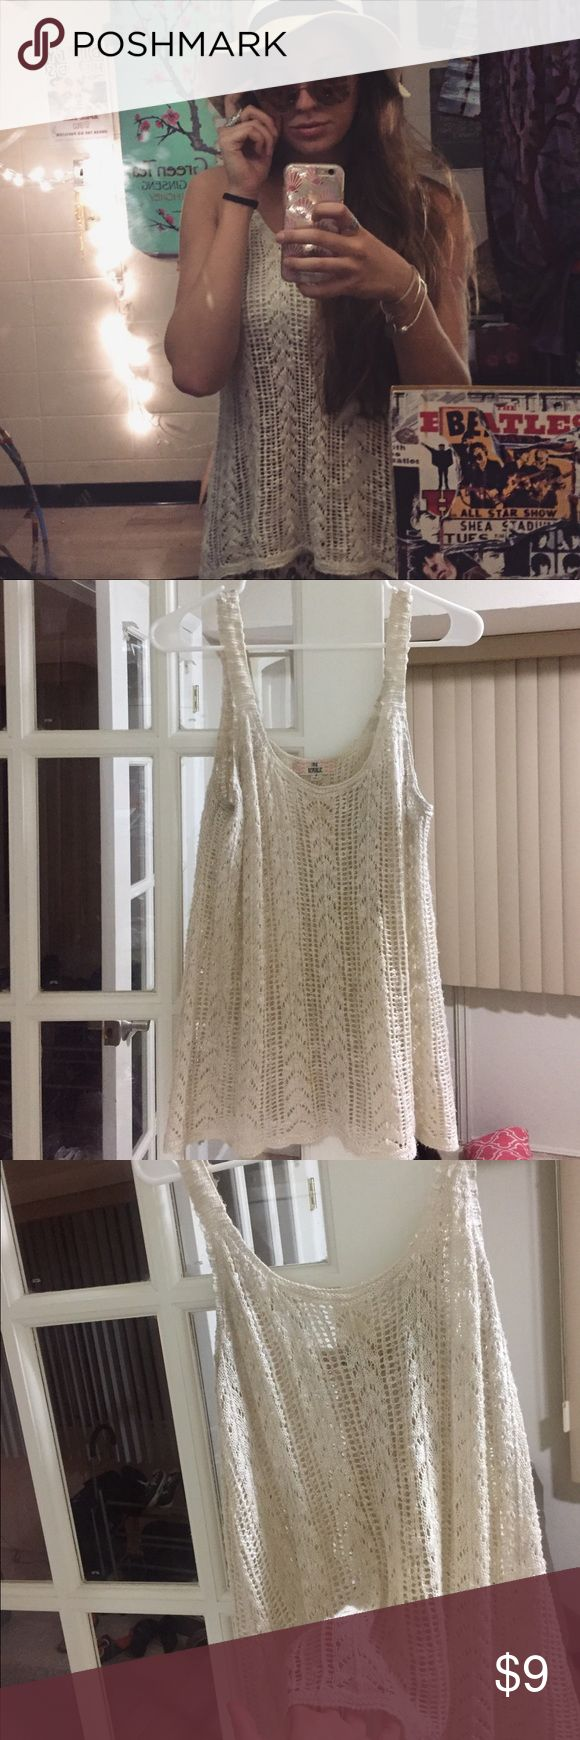 crochet tank top perfect condition, no flaws. goes well with a bandeau or bralette. I wore a nude bandeau to match the tank top so it covered my chest. Says medium but fits small if you want it a bit looser Tops Tank Tops